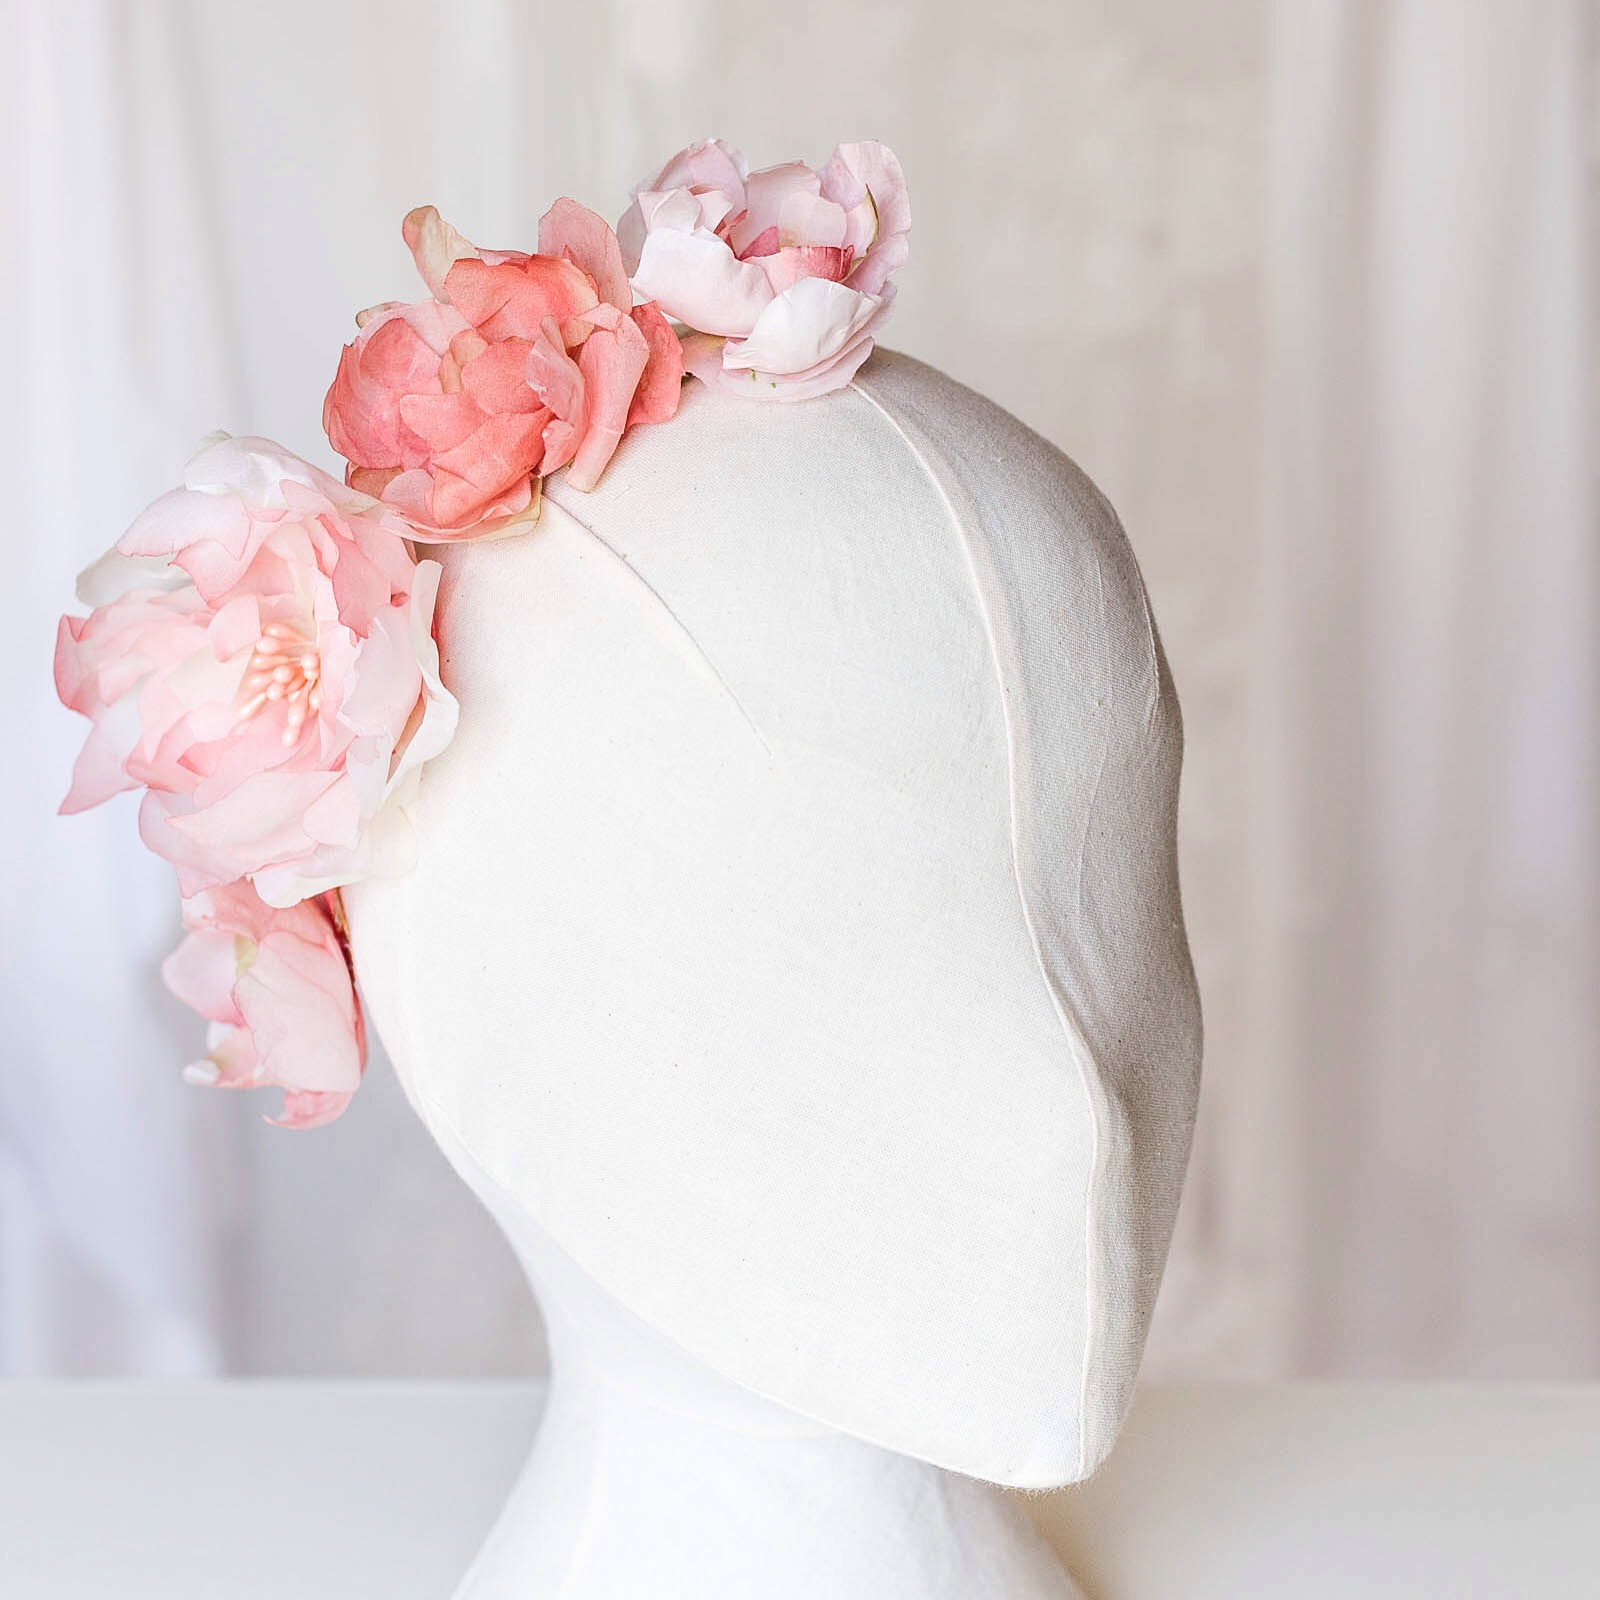 We're also taking inspiration from some of the pieces in our current collection! Our ever popular pink hairflower set will receive a little update so keep your eyes peeled!